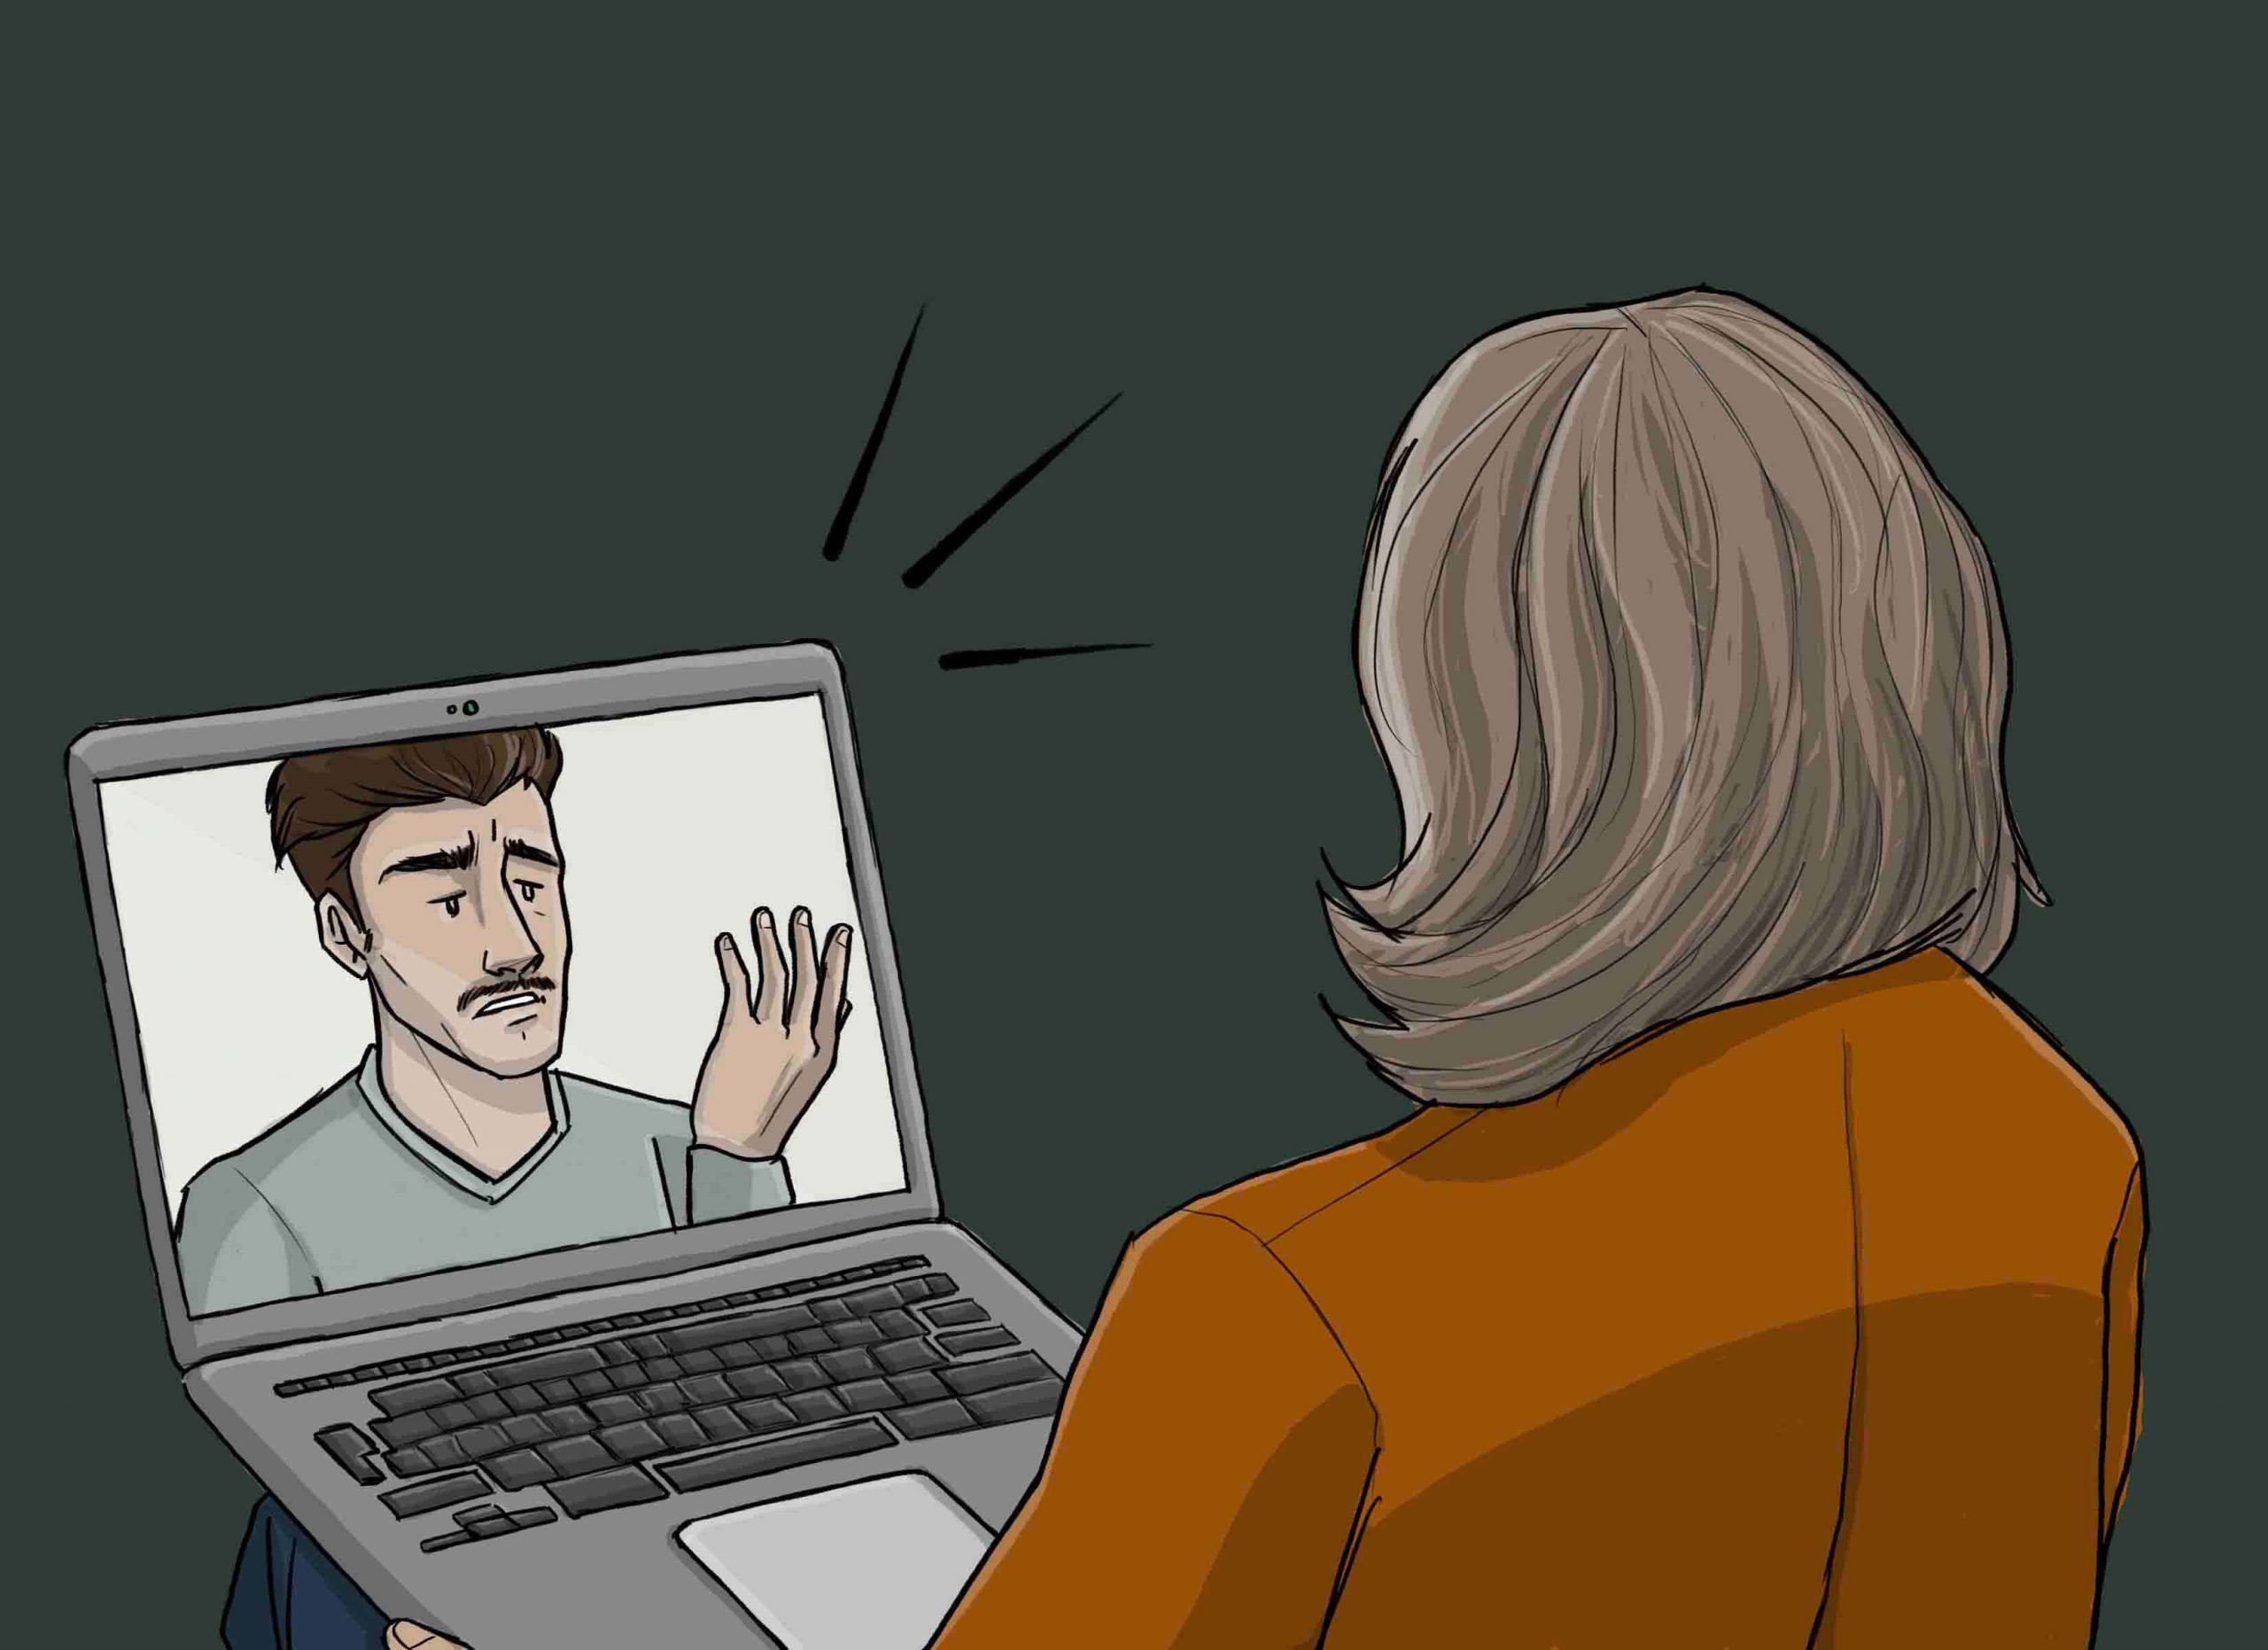 this is a drawing of an online therapy session